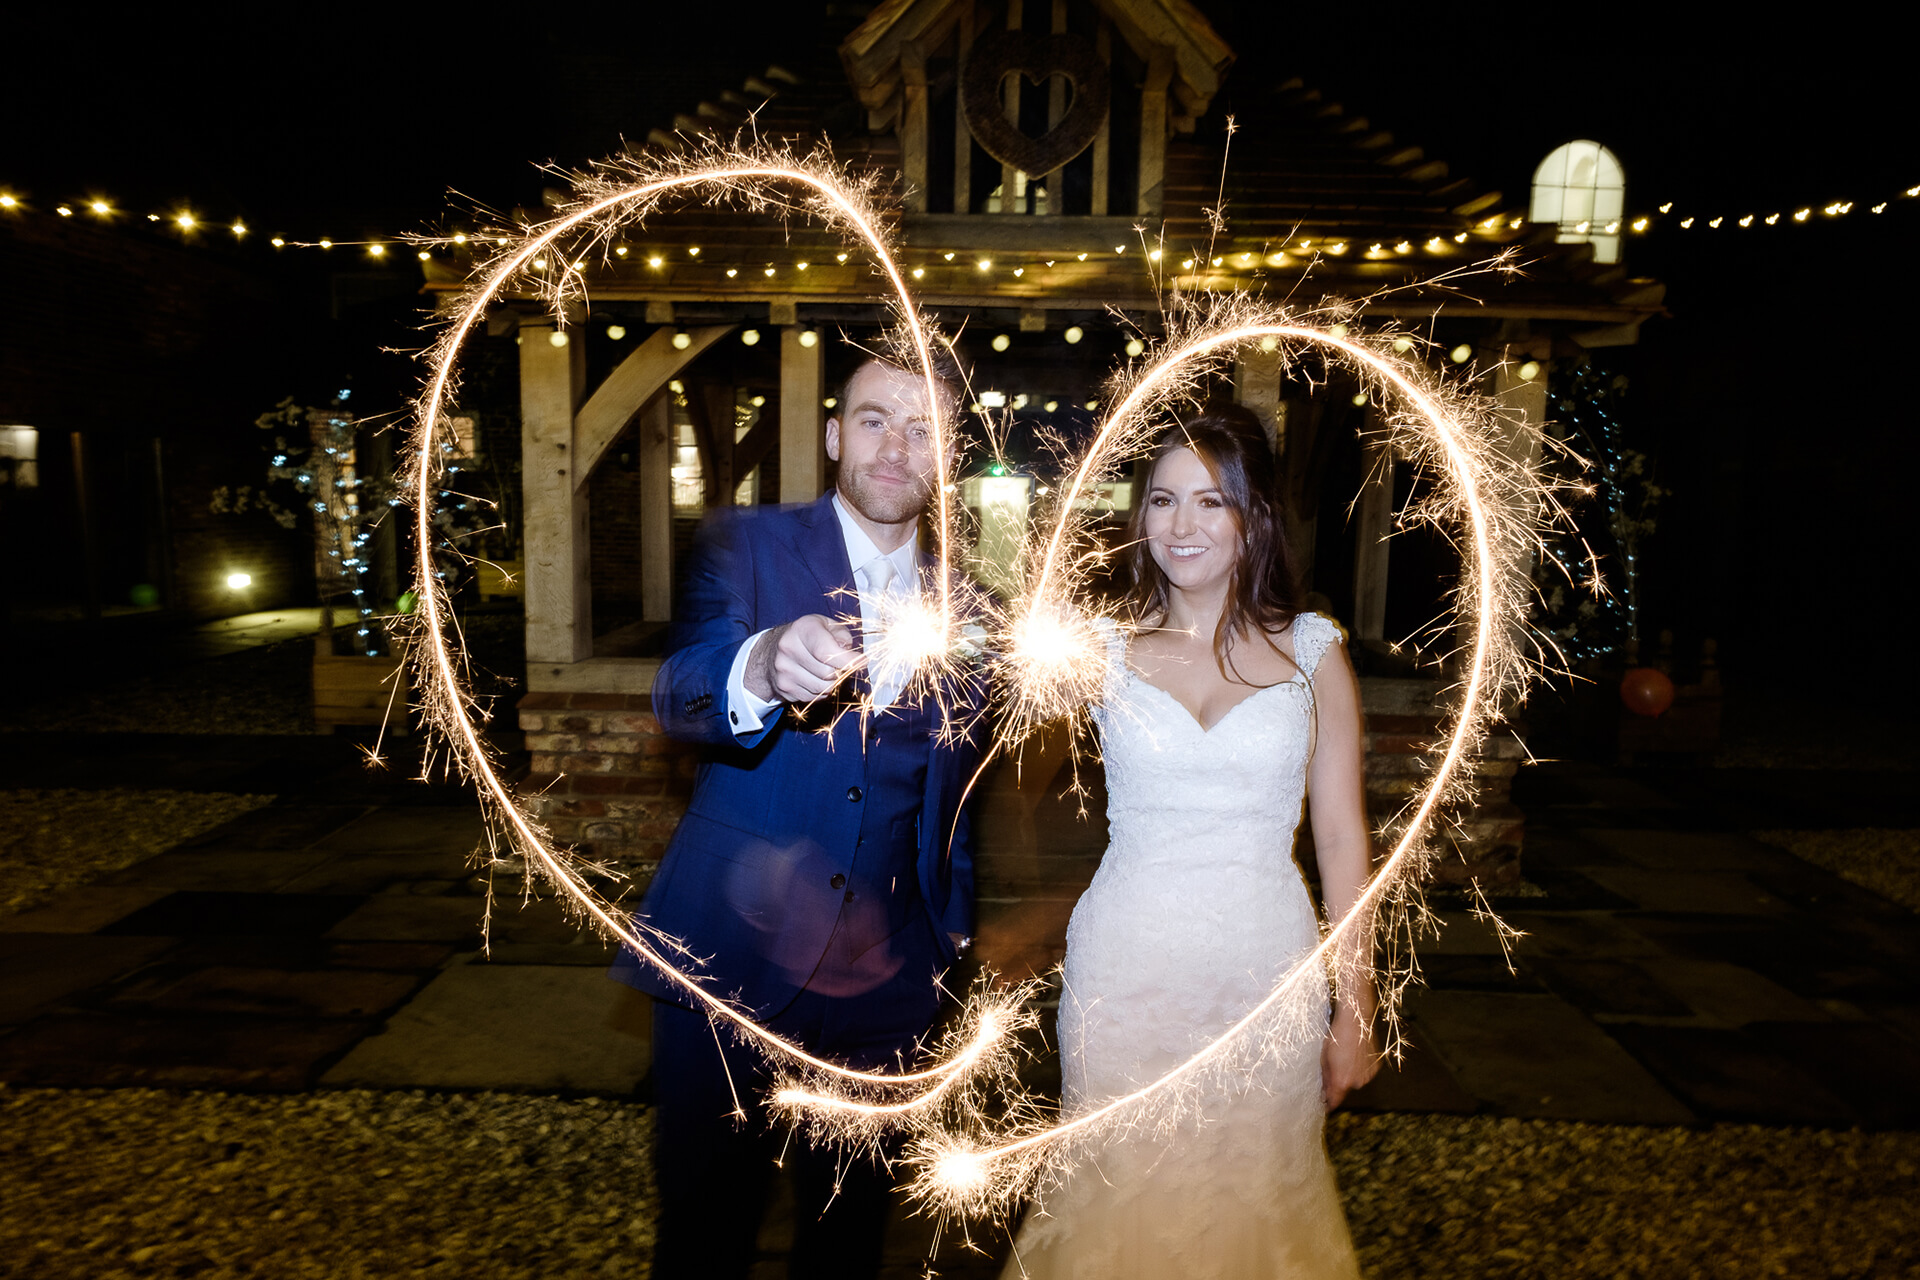 "<a href=""http://www.mjhstudio.co.uk/"" target=""_blank"">Mark J Hillyer</a> captured this amazing shot of Callie and George- the definition of 'Let Love Sparkle'!"